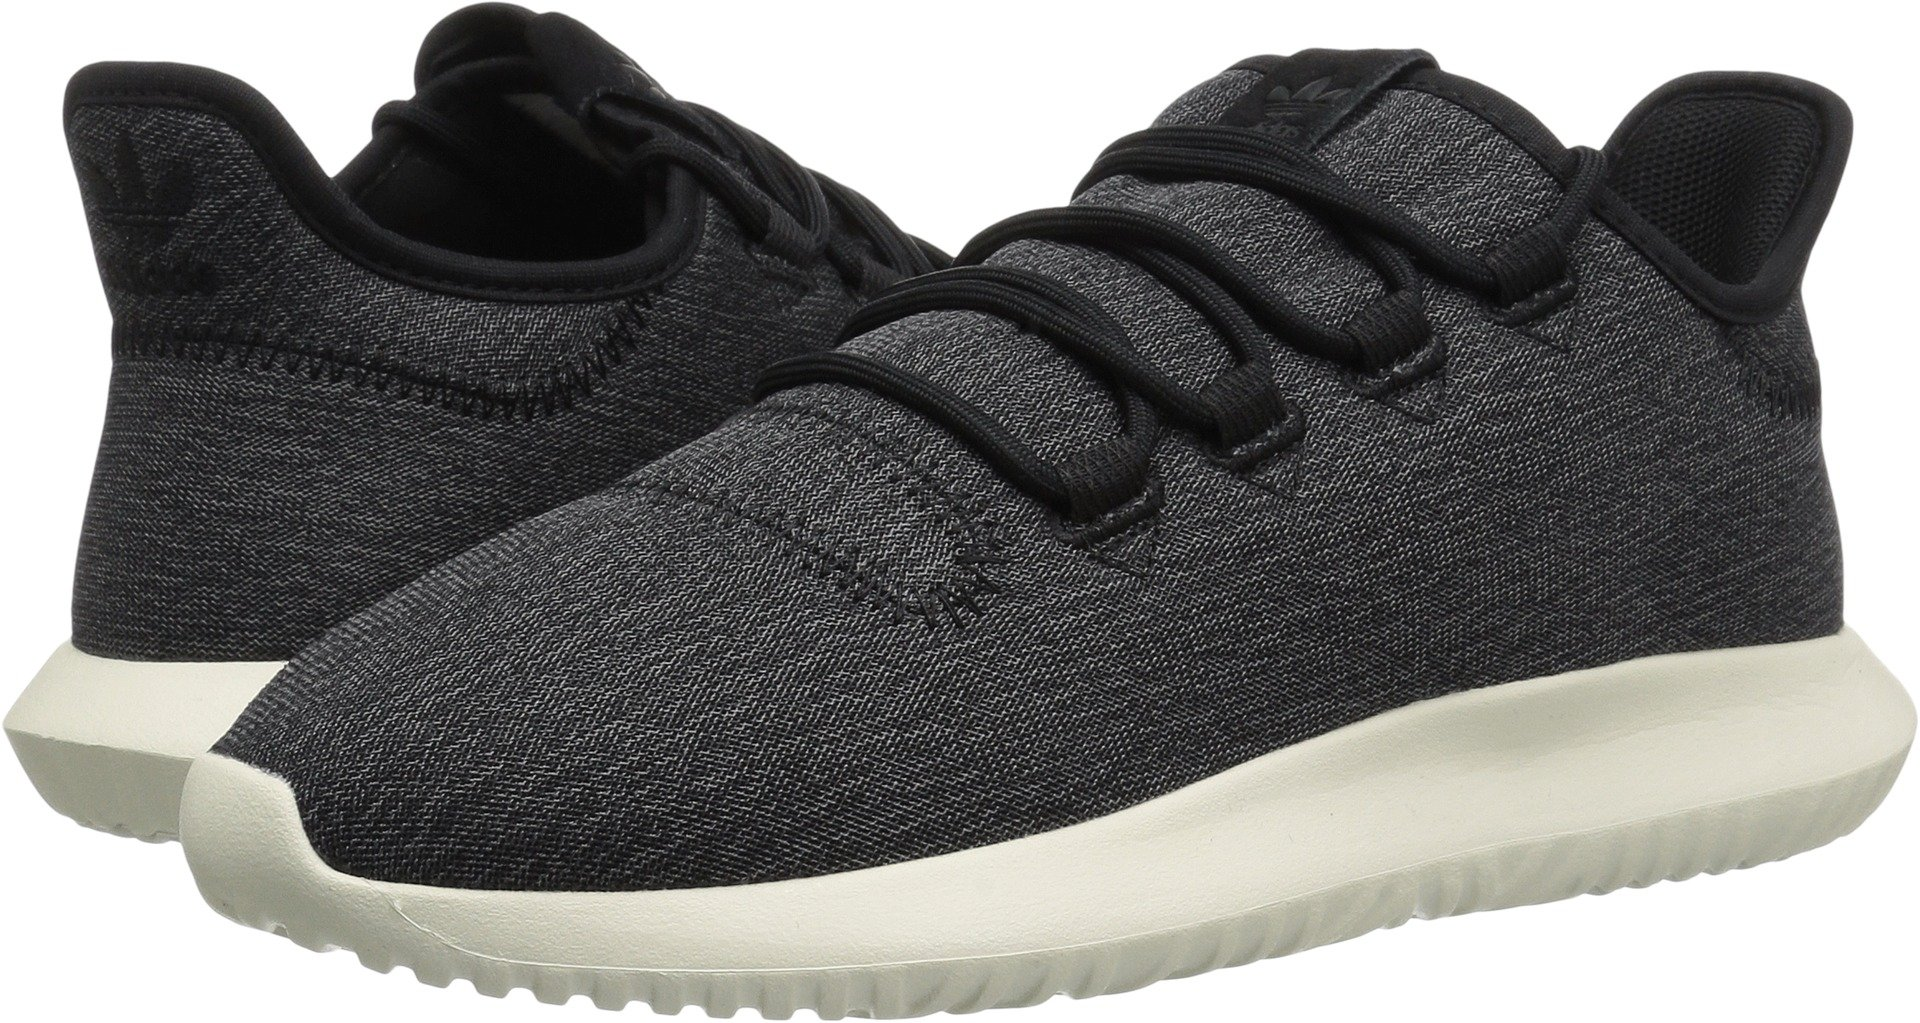 adidas Originals Women's Tubular Shadow Black/Black/Off-White 8.5 B US